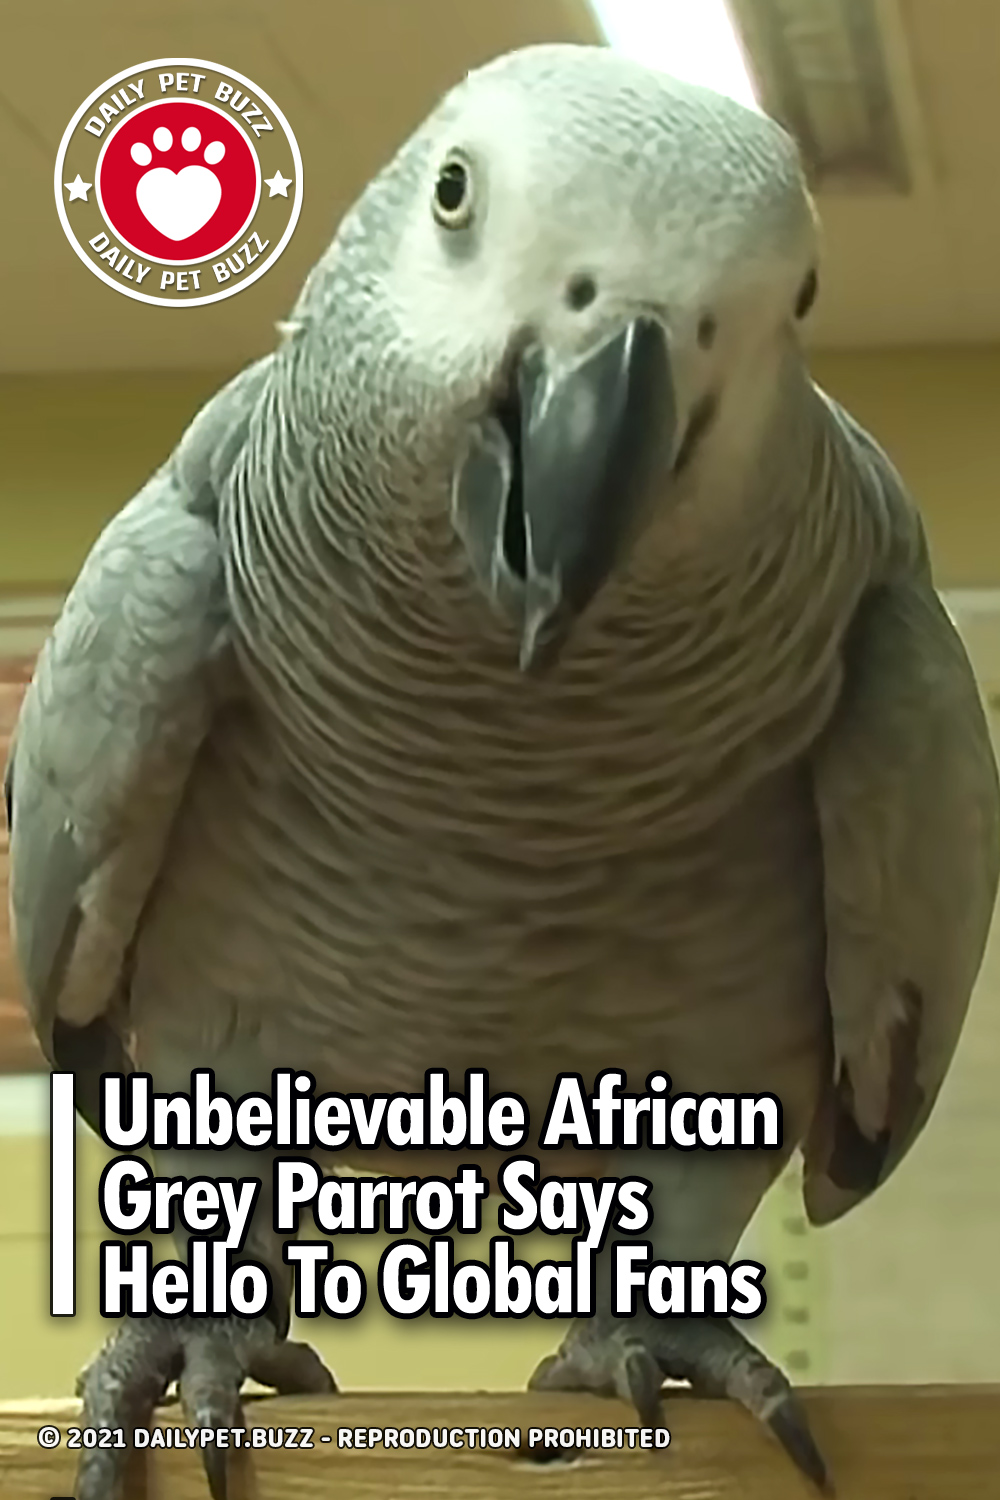 Unbelievable African Grey Parrot Says Hello To Global Fans